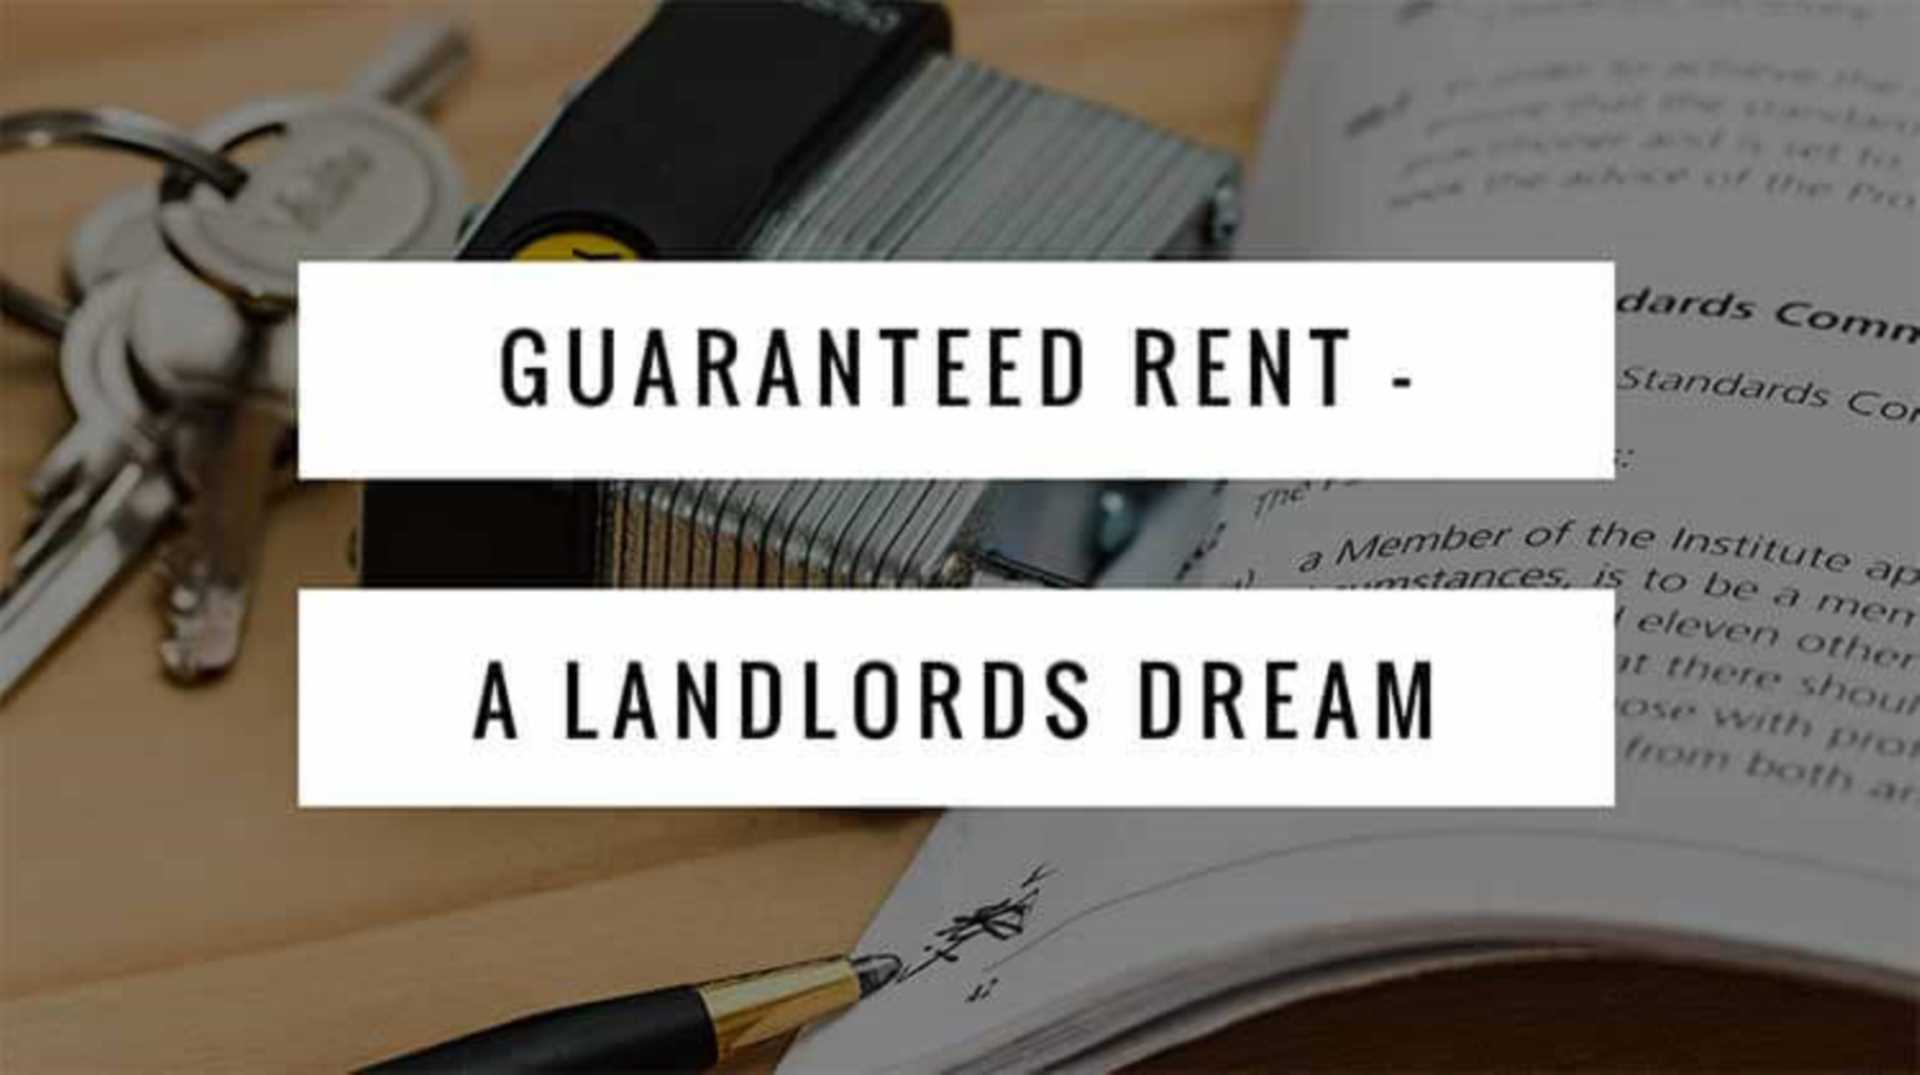 Guaranteed Rent - A Landlord`s Dream - Renting a Property in Croydon?